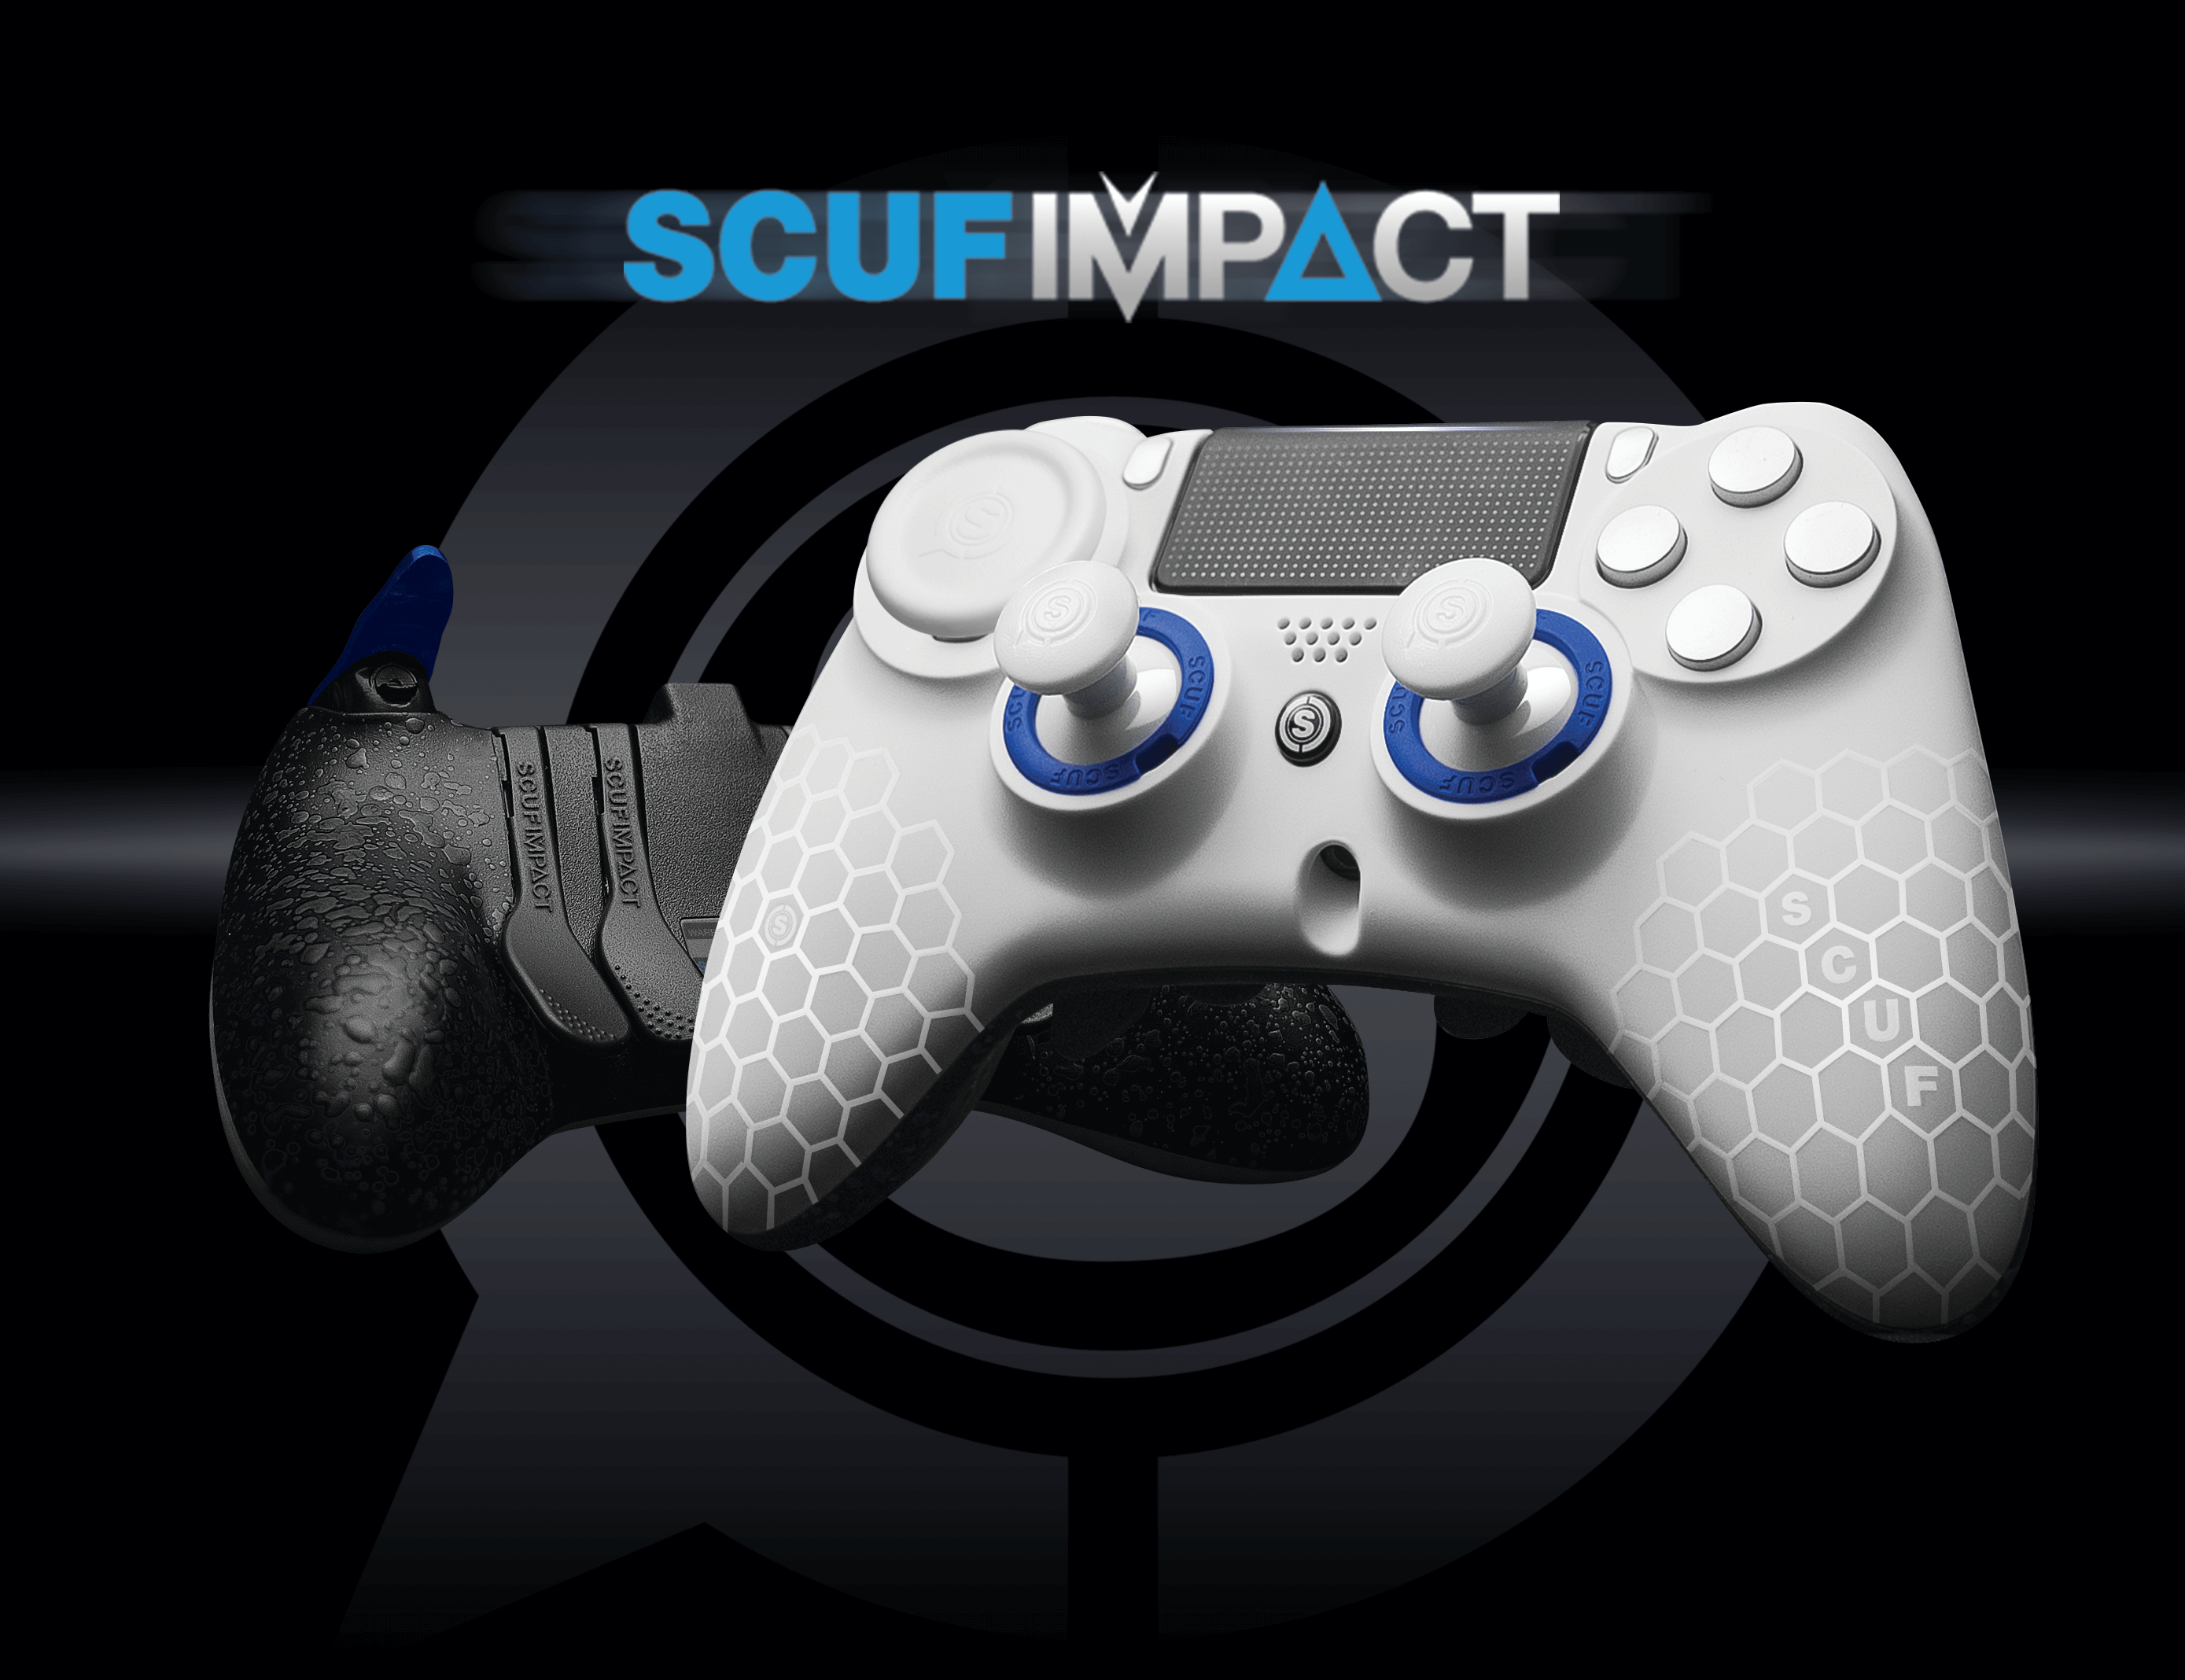 SCUF Impact PS4/PC Pro Gaming Controller Is A Customizable